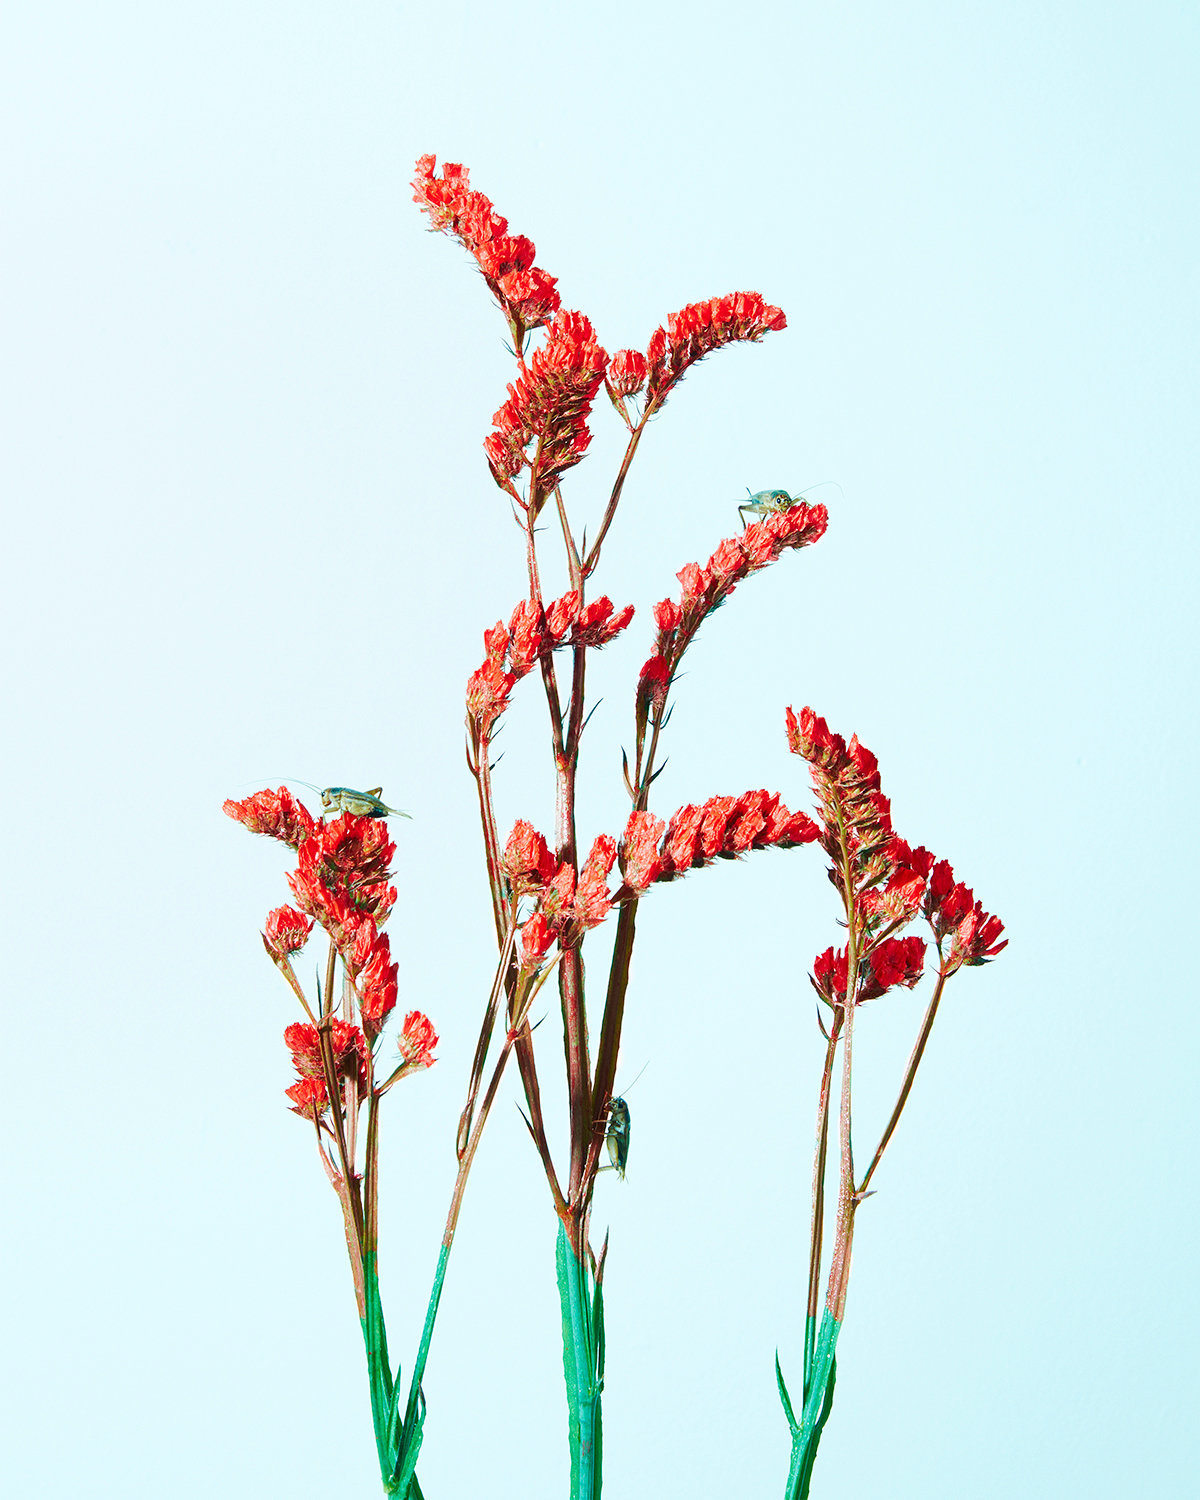 15 Painted Red Flowers with Black Crickets.jpg